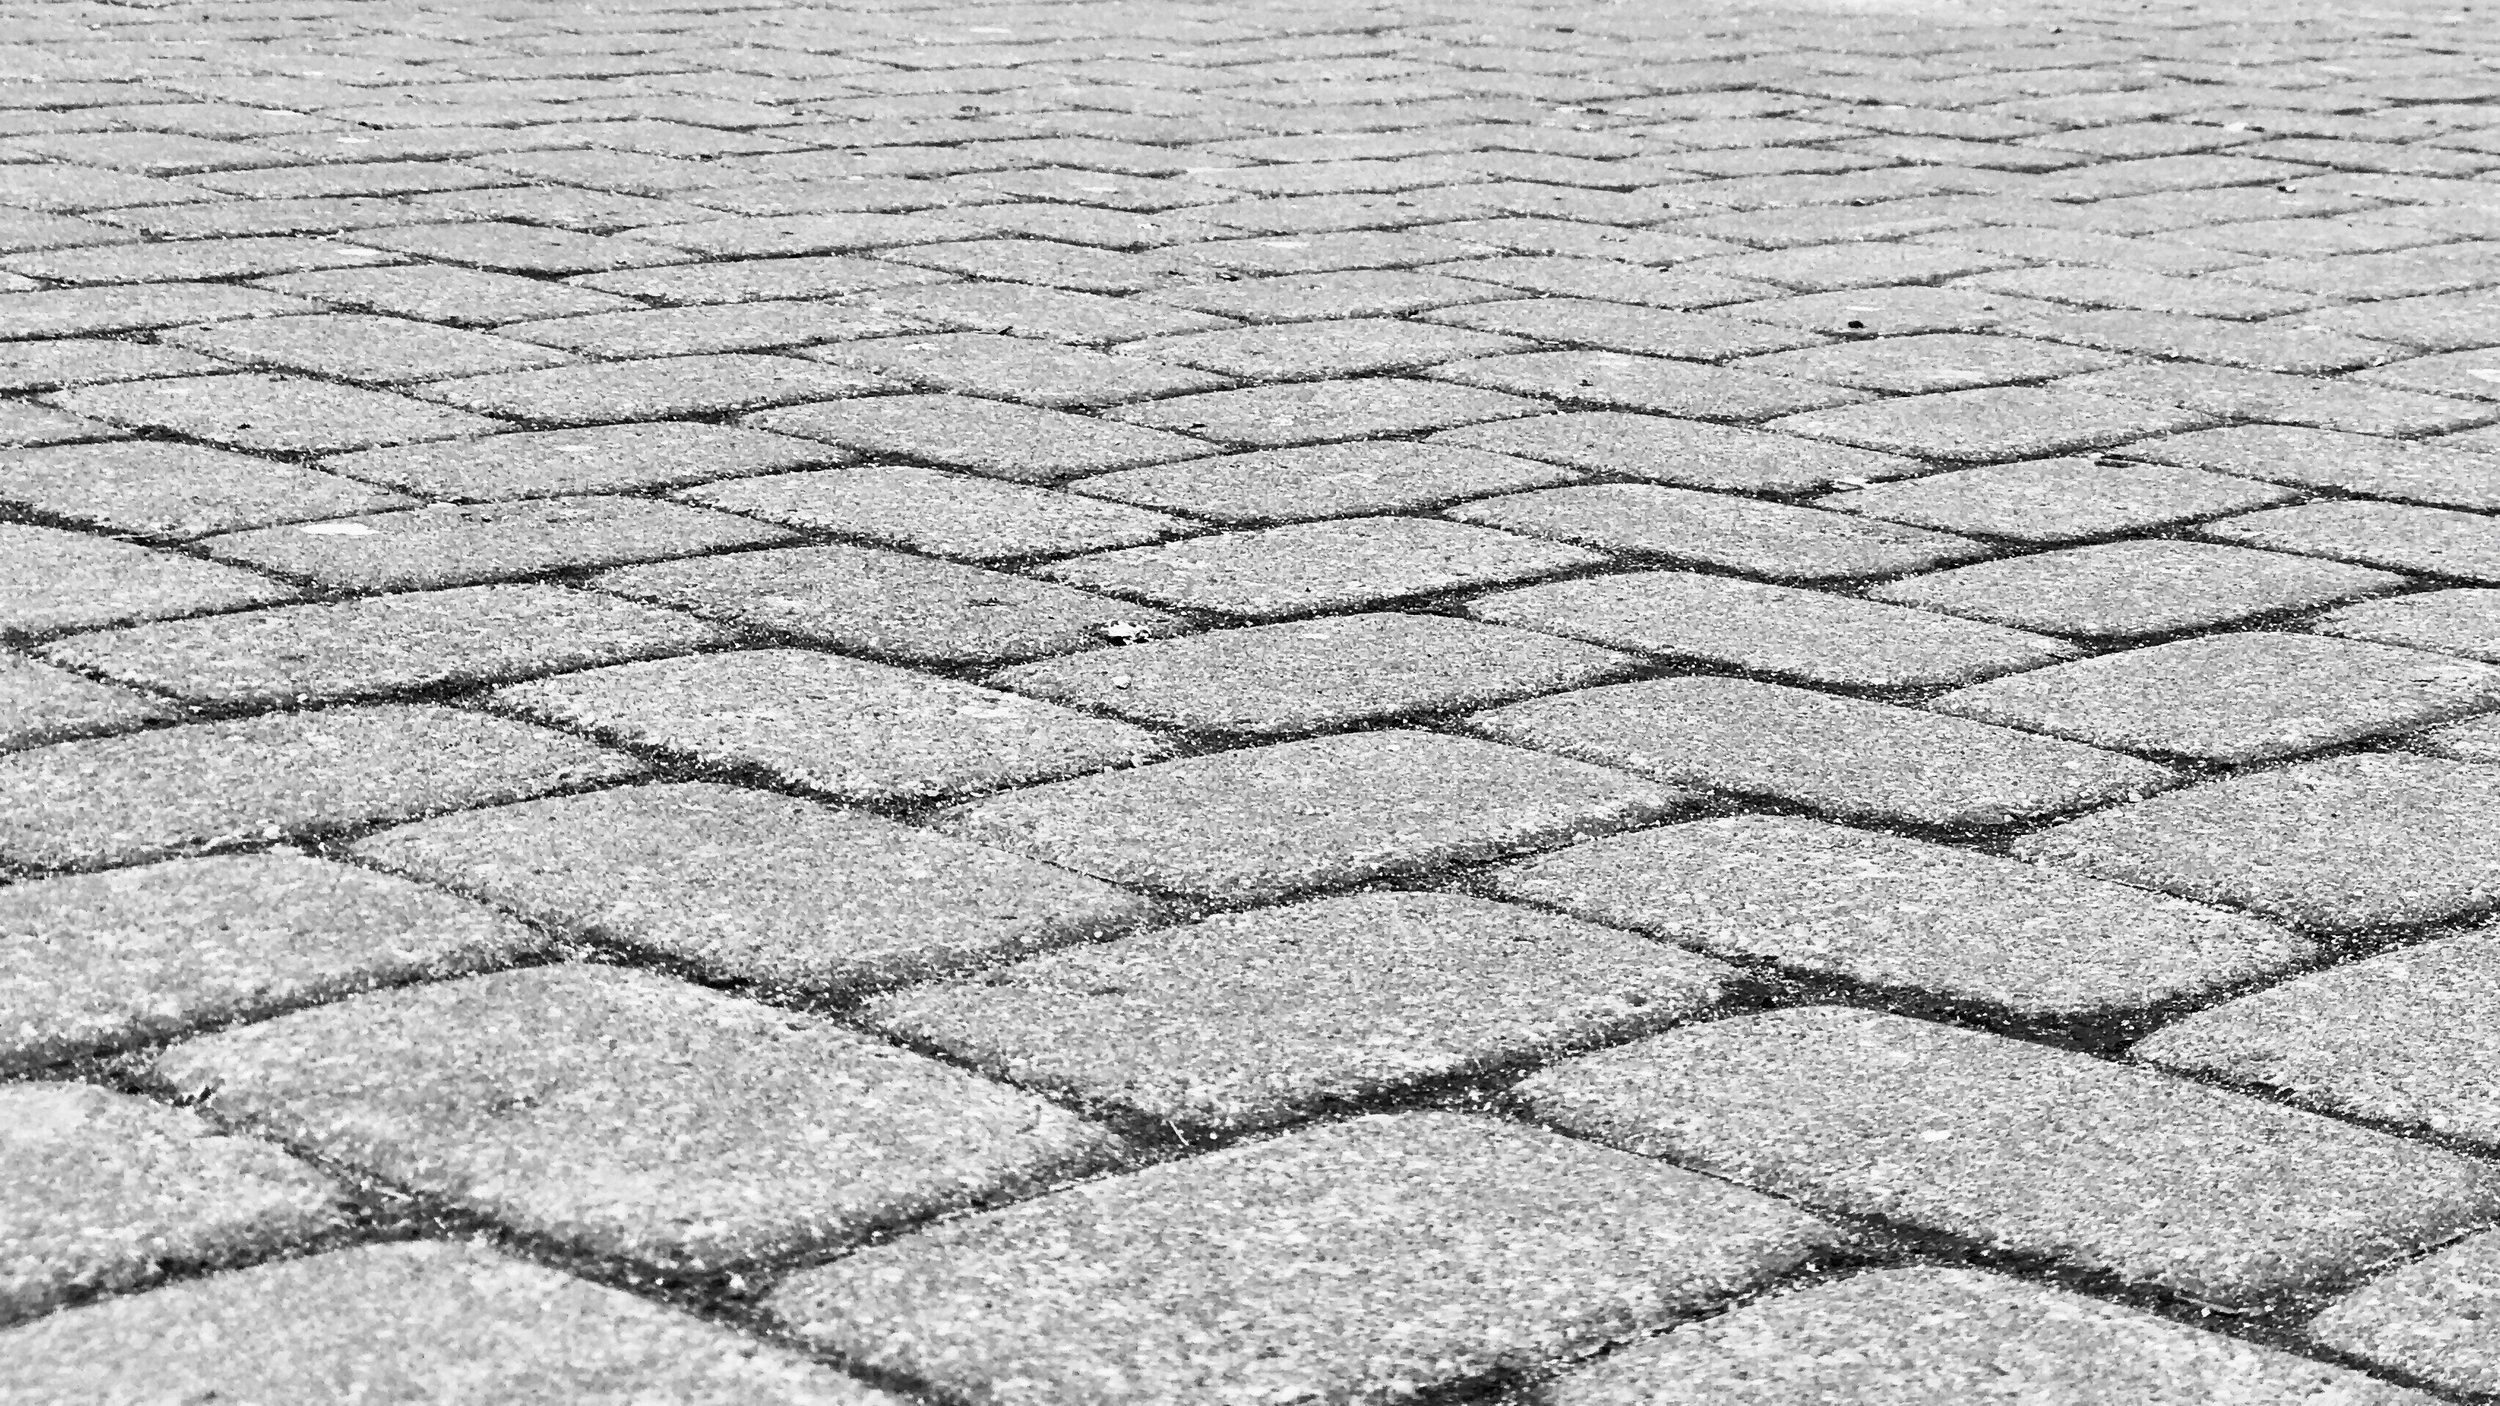 Sidewalk and street pavers are cooler and more porous